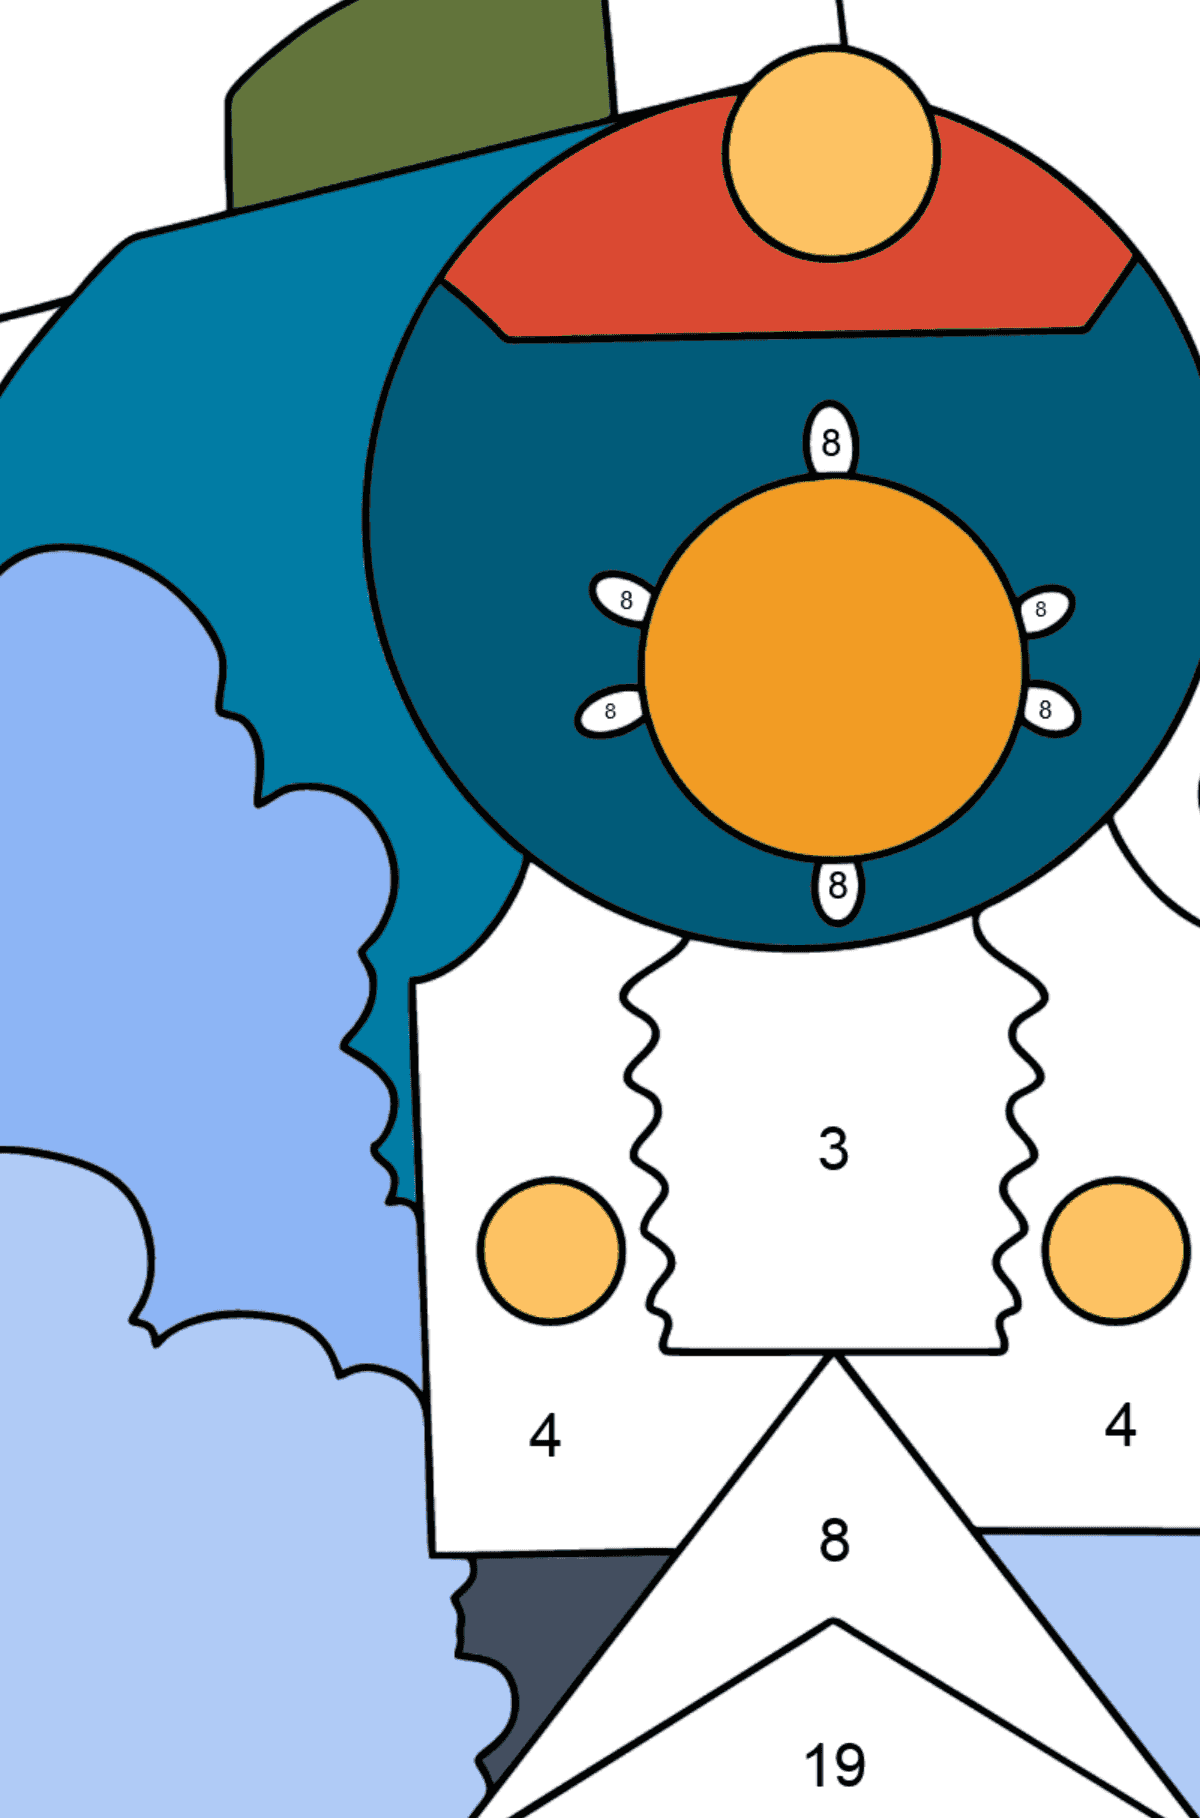 Coloring Page - A Locomotive with Coaches - Coloring by Numbers for Kids